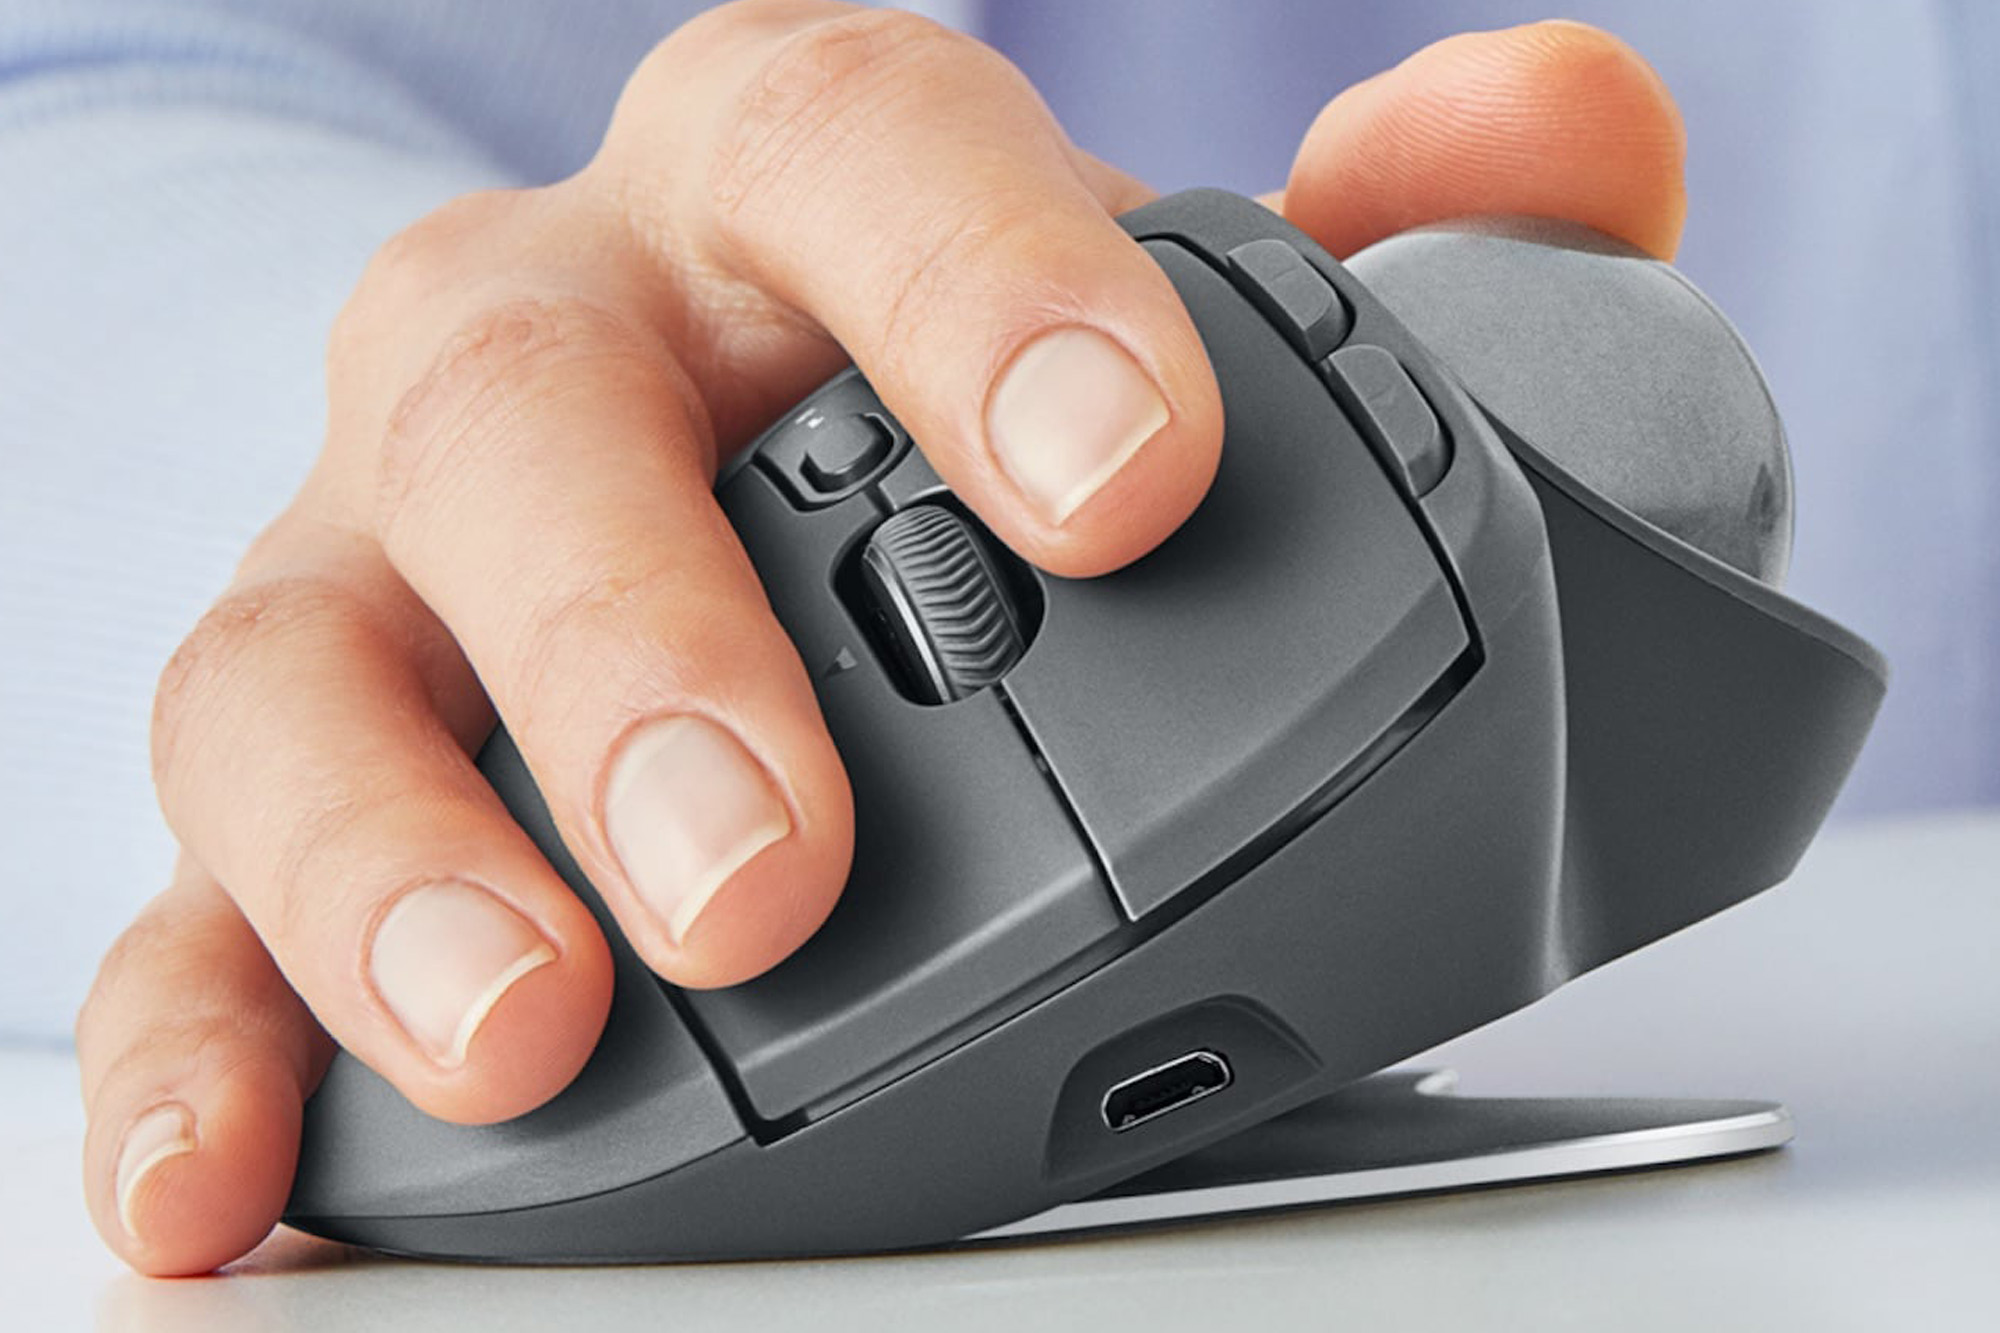 Best Mouse for Business Owners in 2019